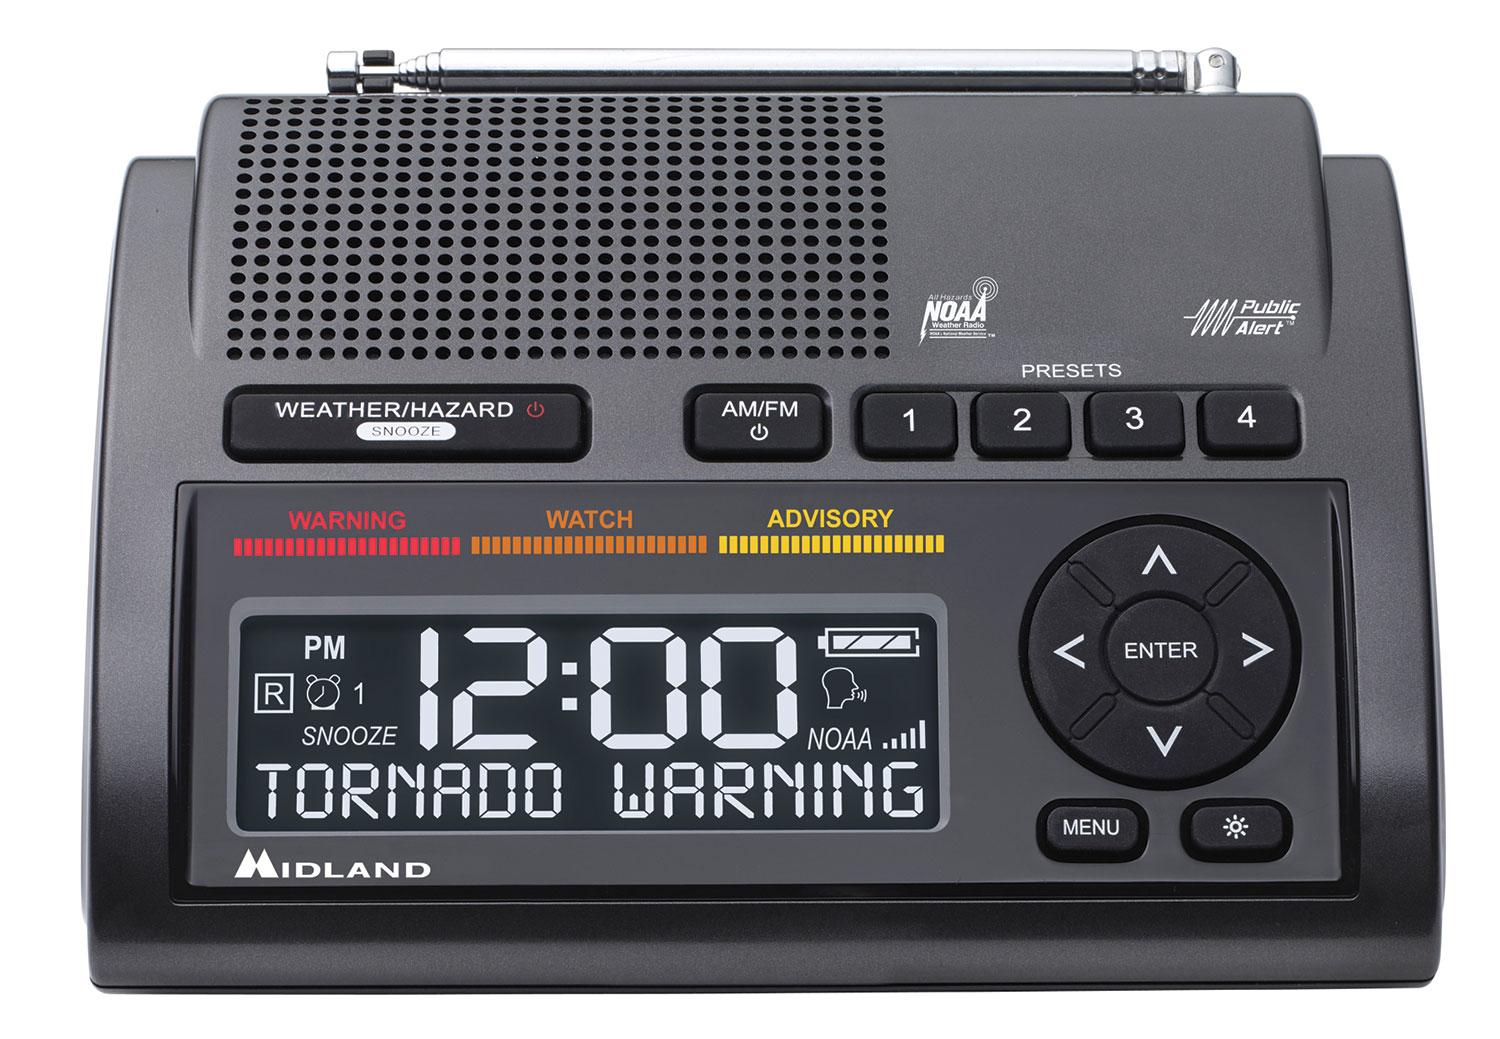 The WR400 Deluxe NOAA Weather Alert Radio